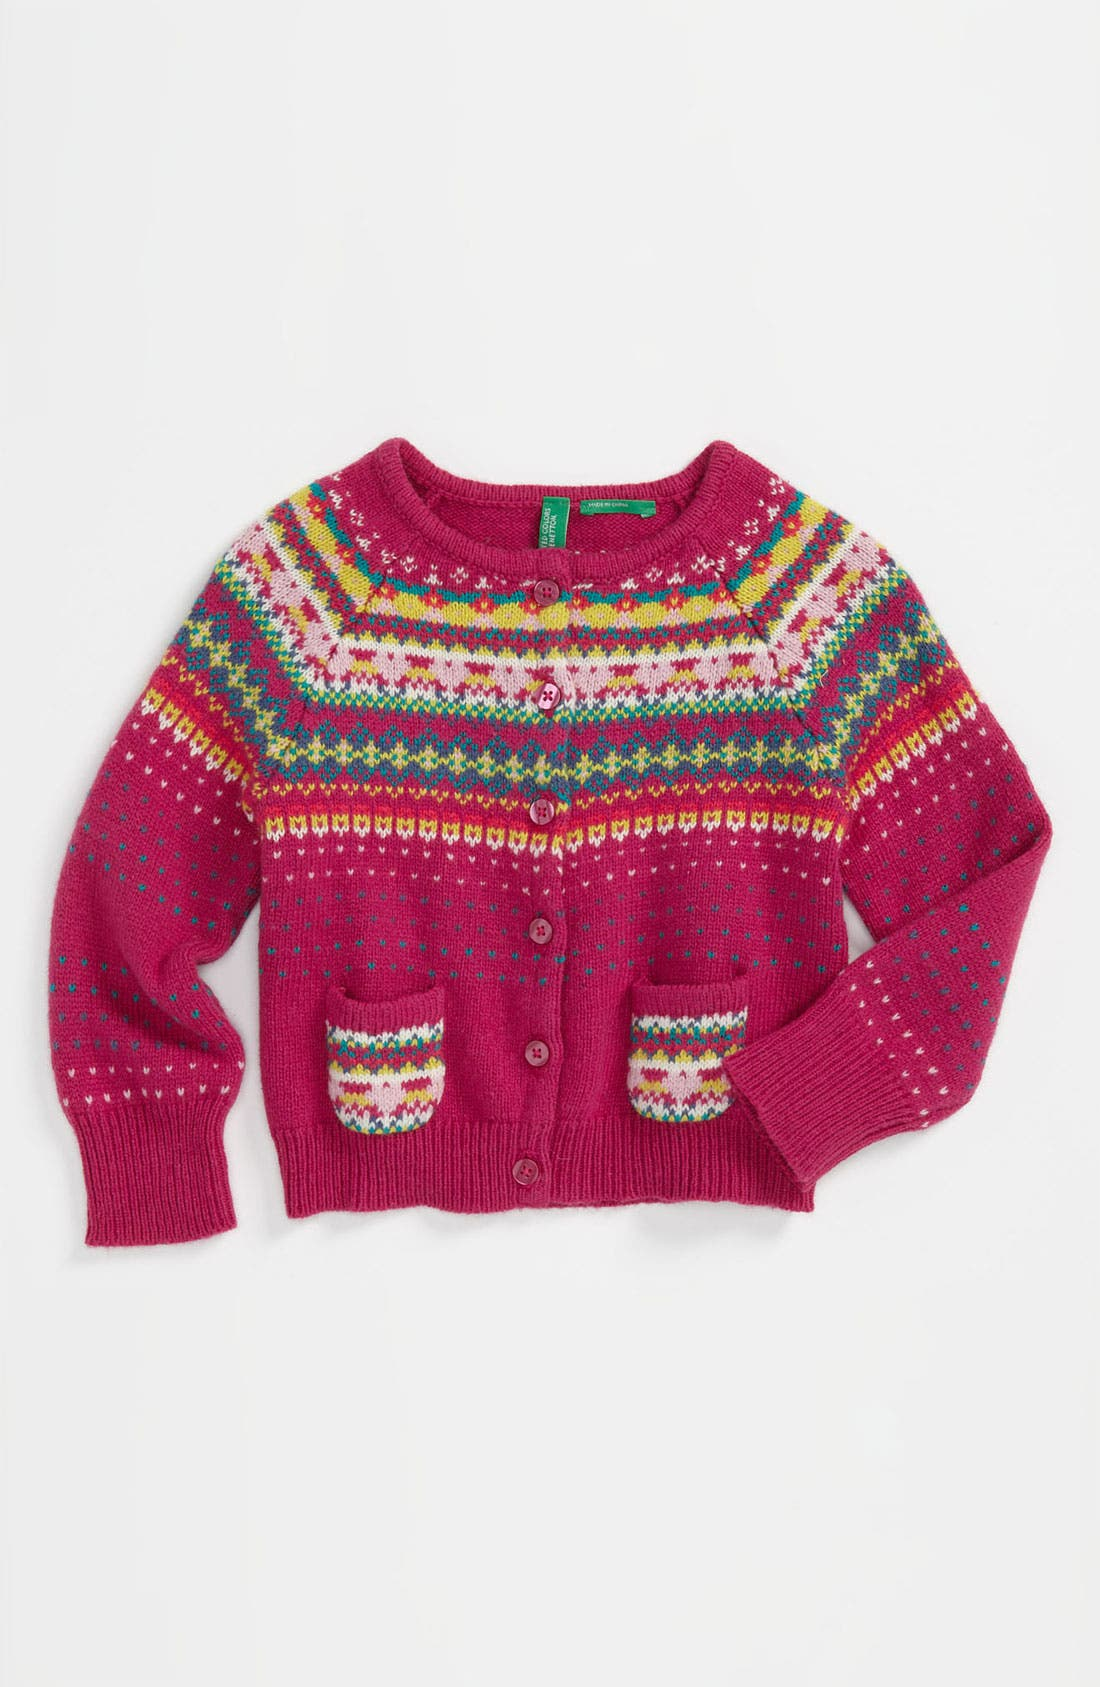 Alternate Image 1 Selected - United Colors of Benetton Fair Isle Sweater (Toddler)